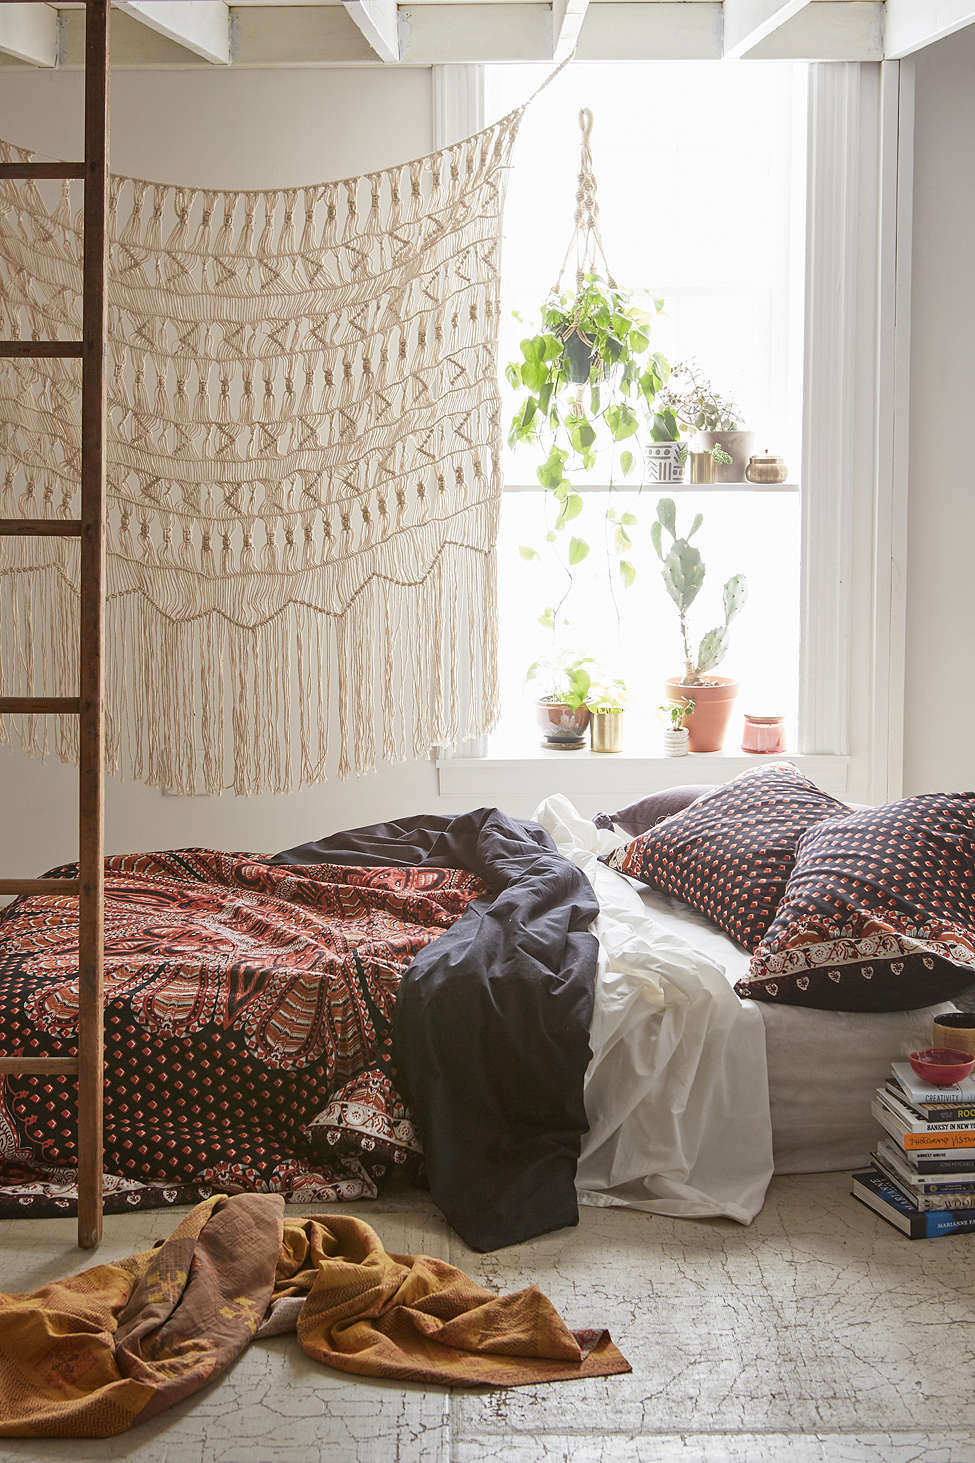 31 bohemian bedroom ideas decoholic - Boho chic deco ...